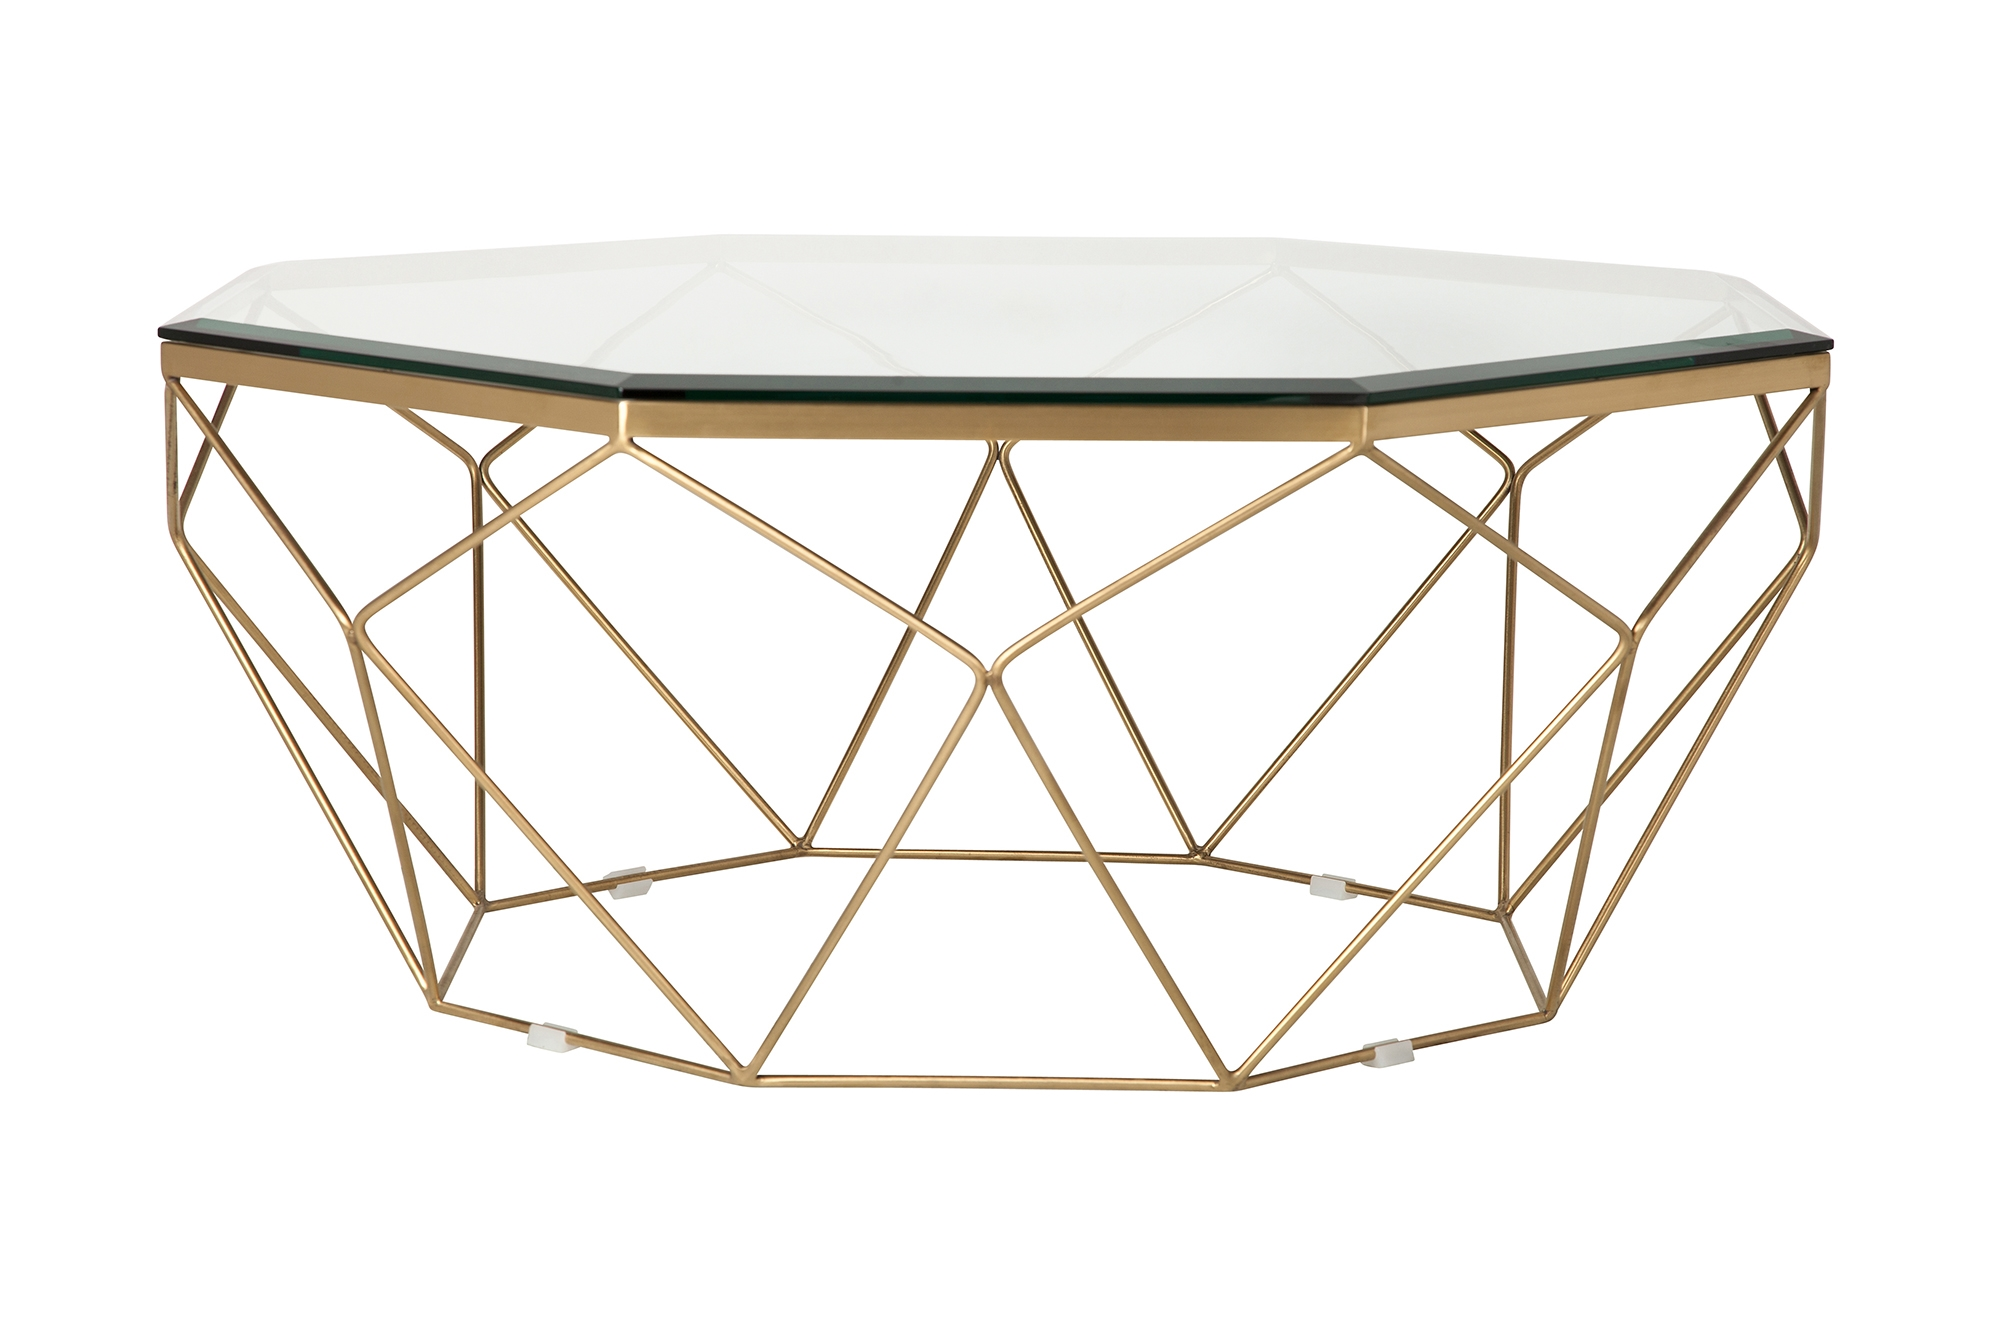 Marlow Antique Brass Coffee Table The Khazana Home Austin Furniture